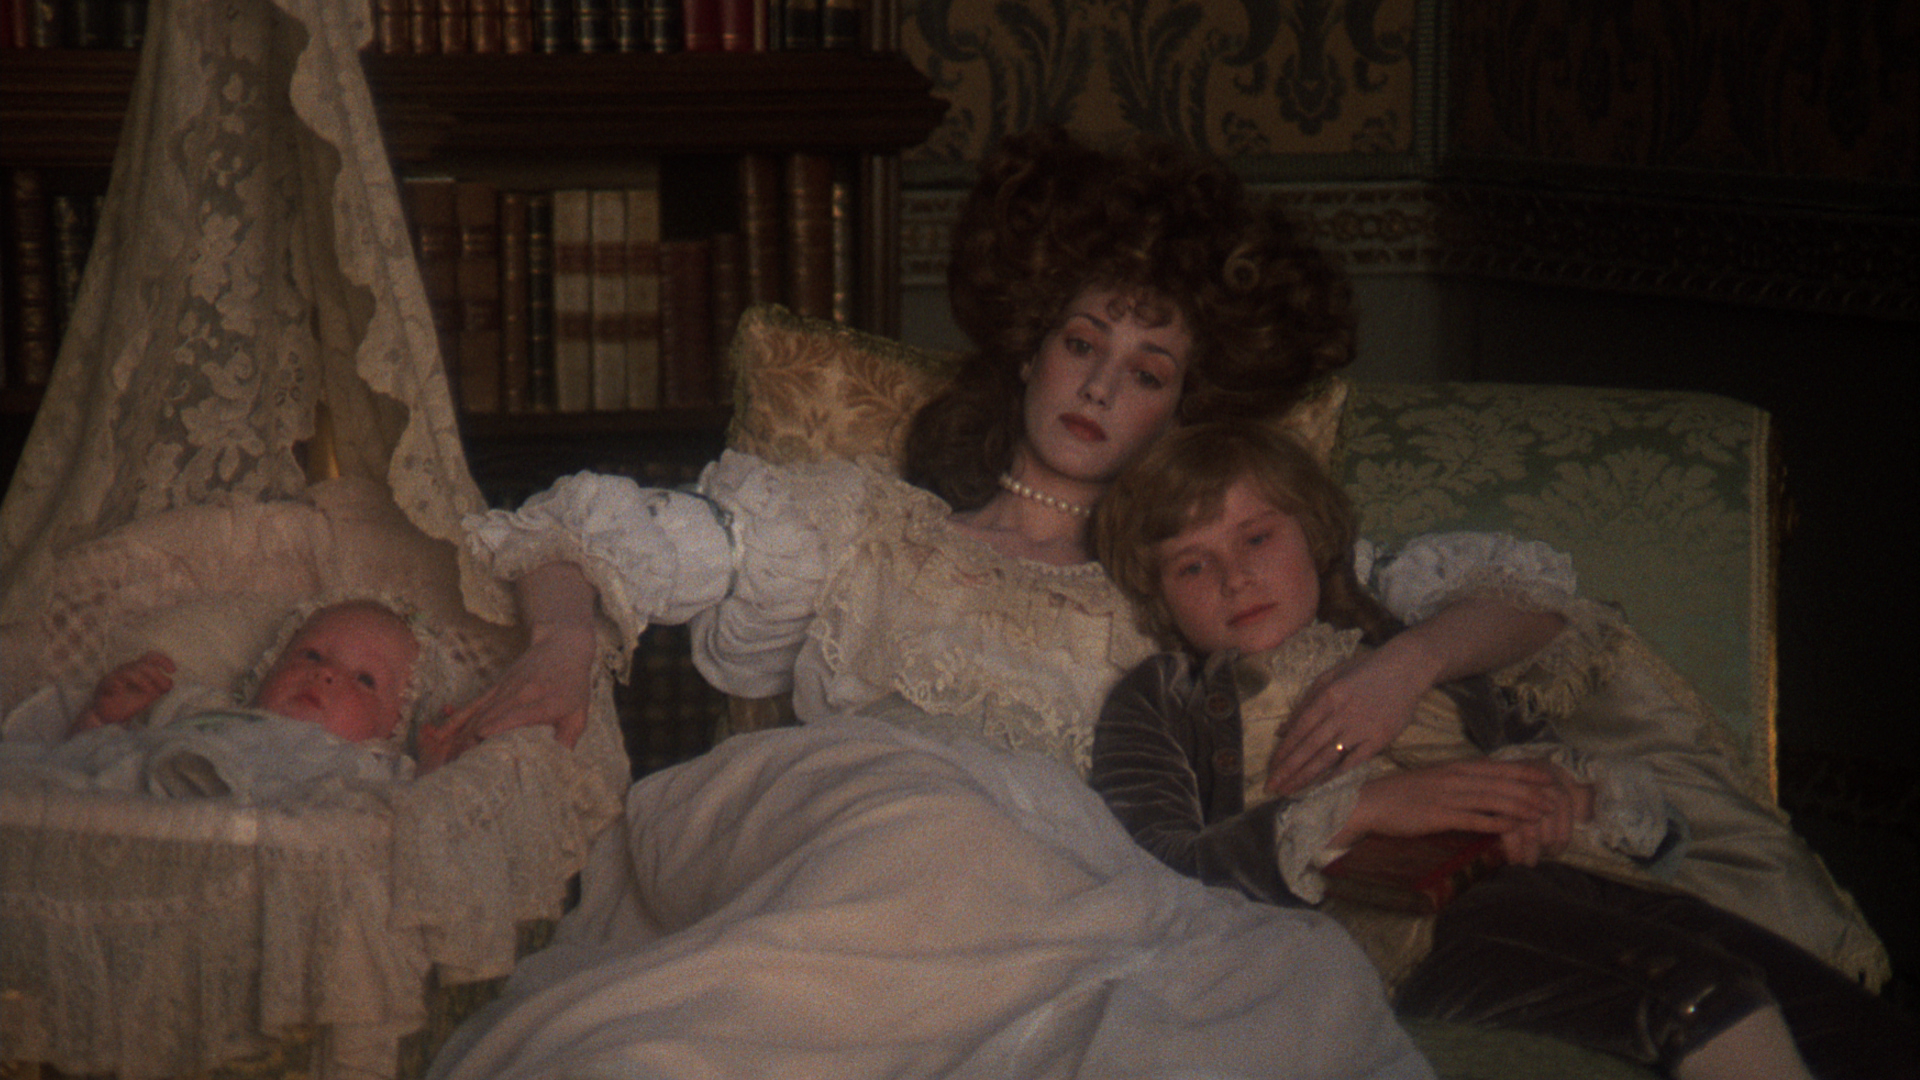 BARRY LYNDON PIC 8 -® 1975 Warner Bros. All Rights Reserved